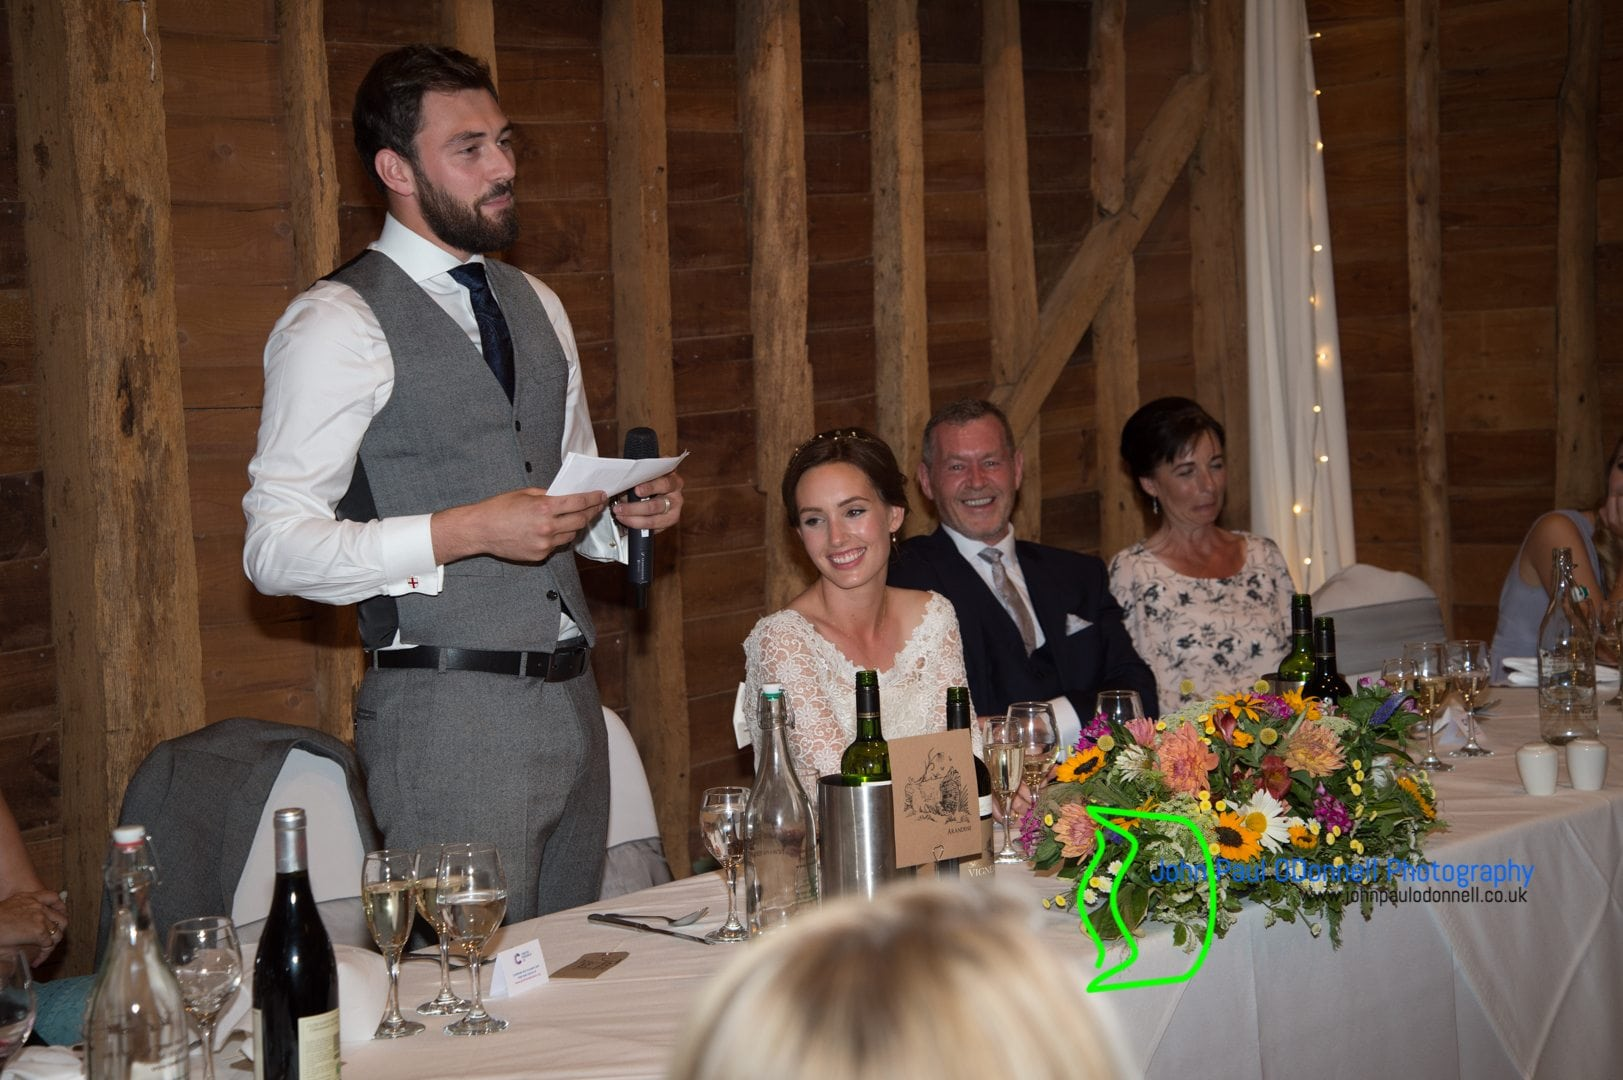 Kara and Simons Wedding at Tewingbury Farm-23